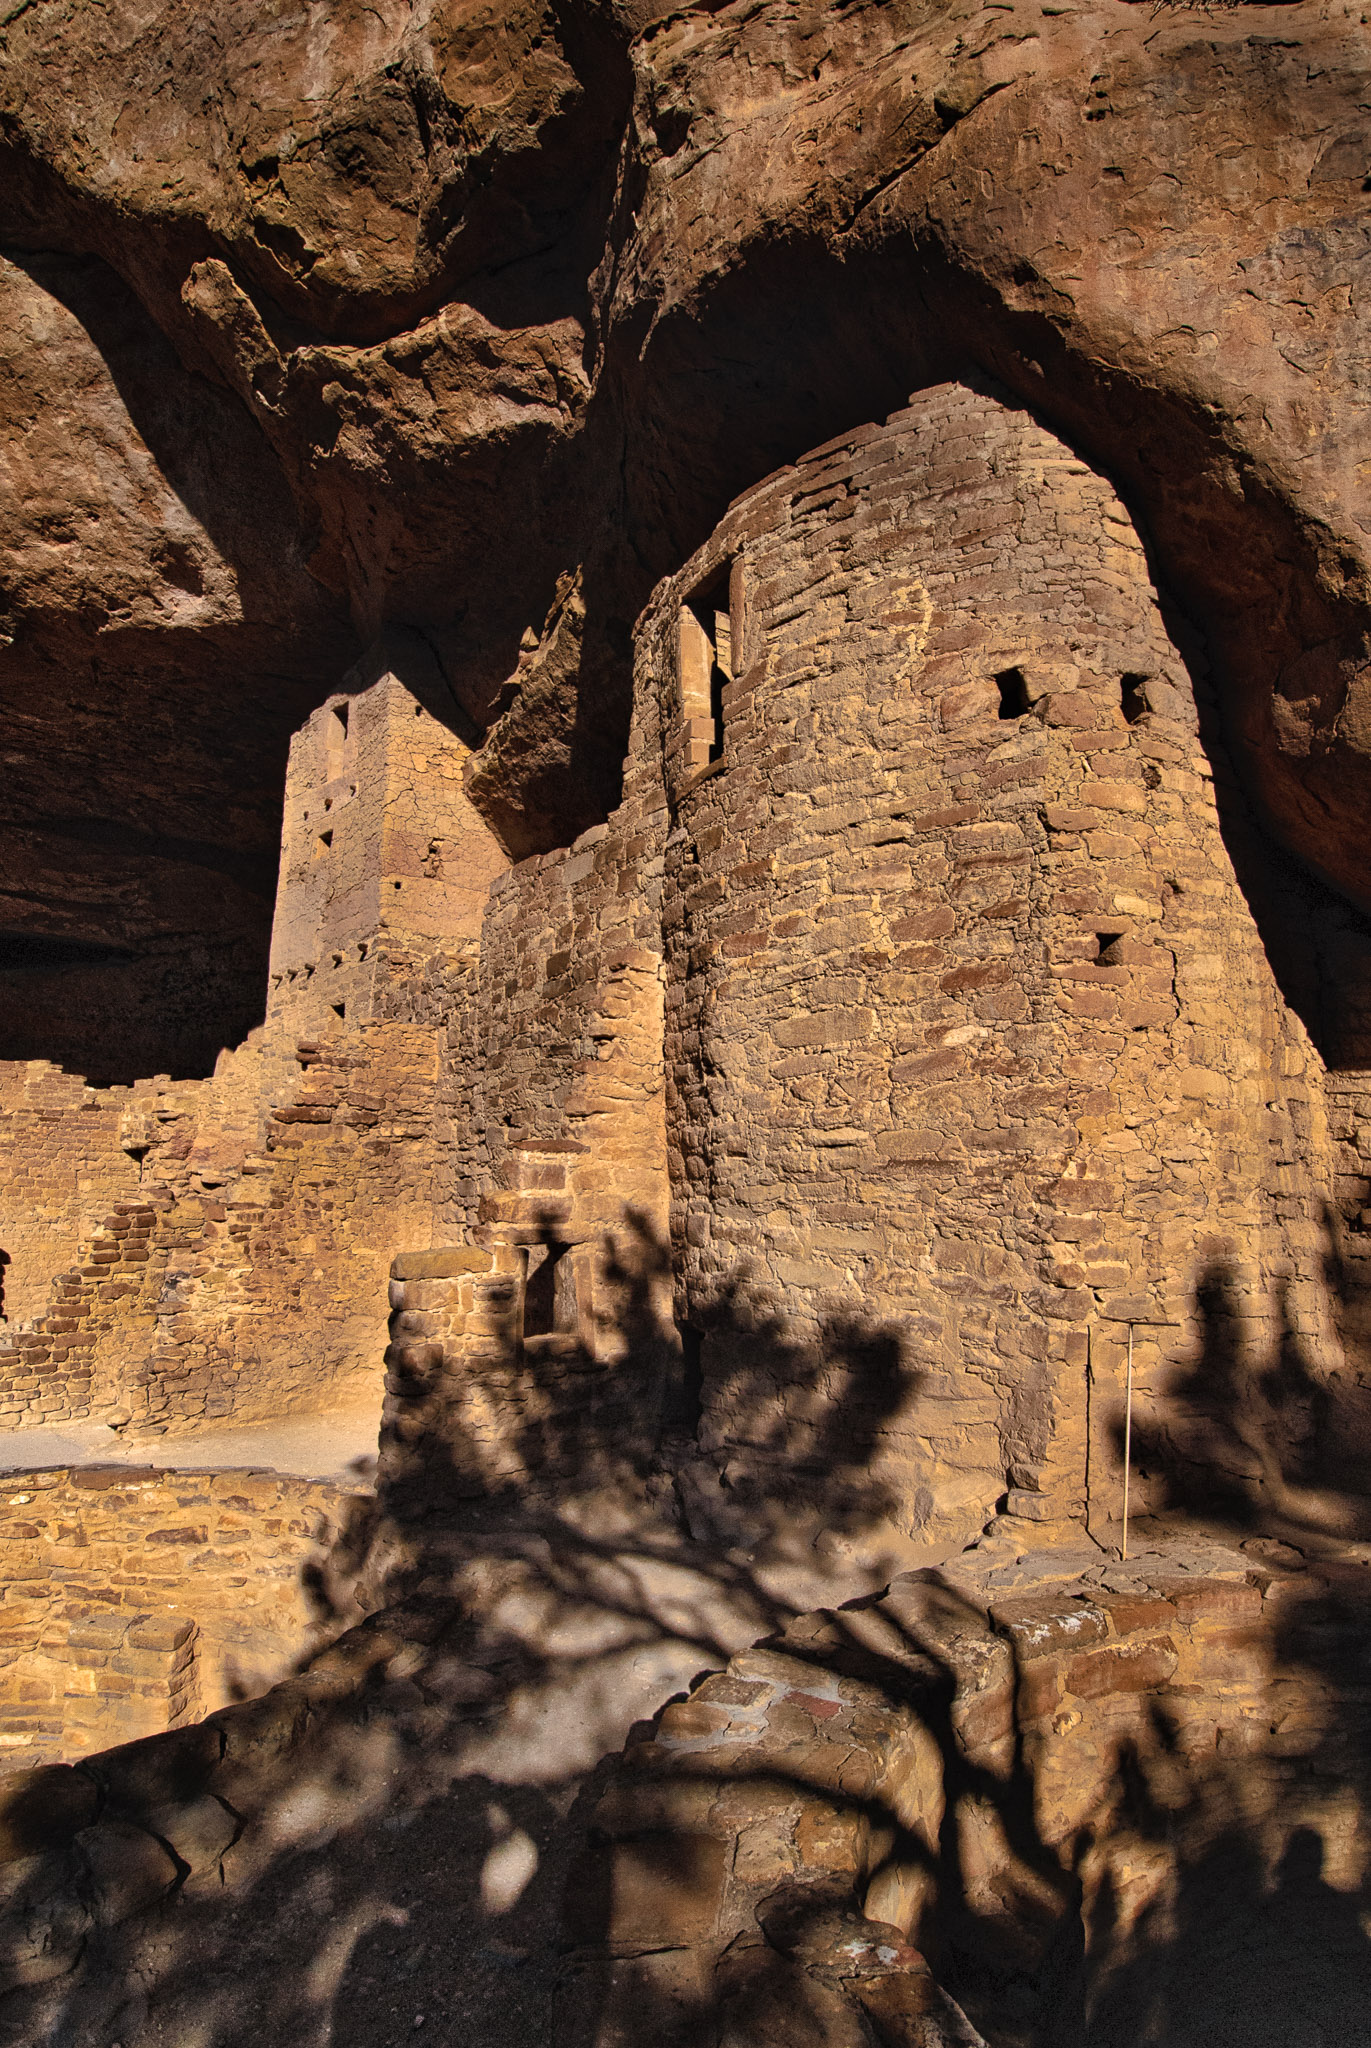 Square and round towers of Cliff Palace in Mesa Verde National Park near Durango and Cortez, Colorado.